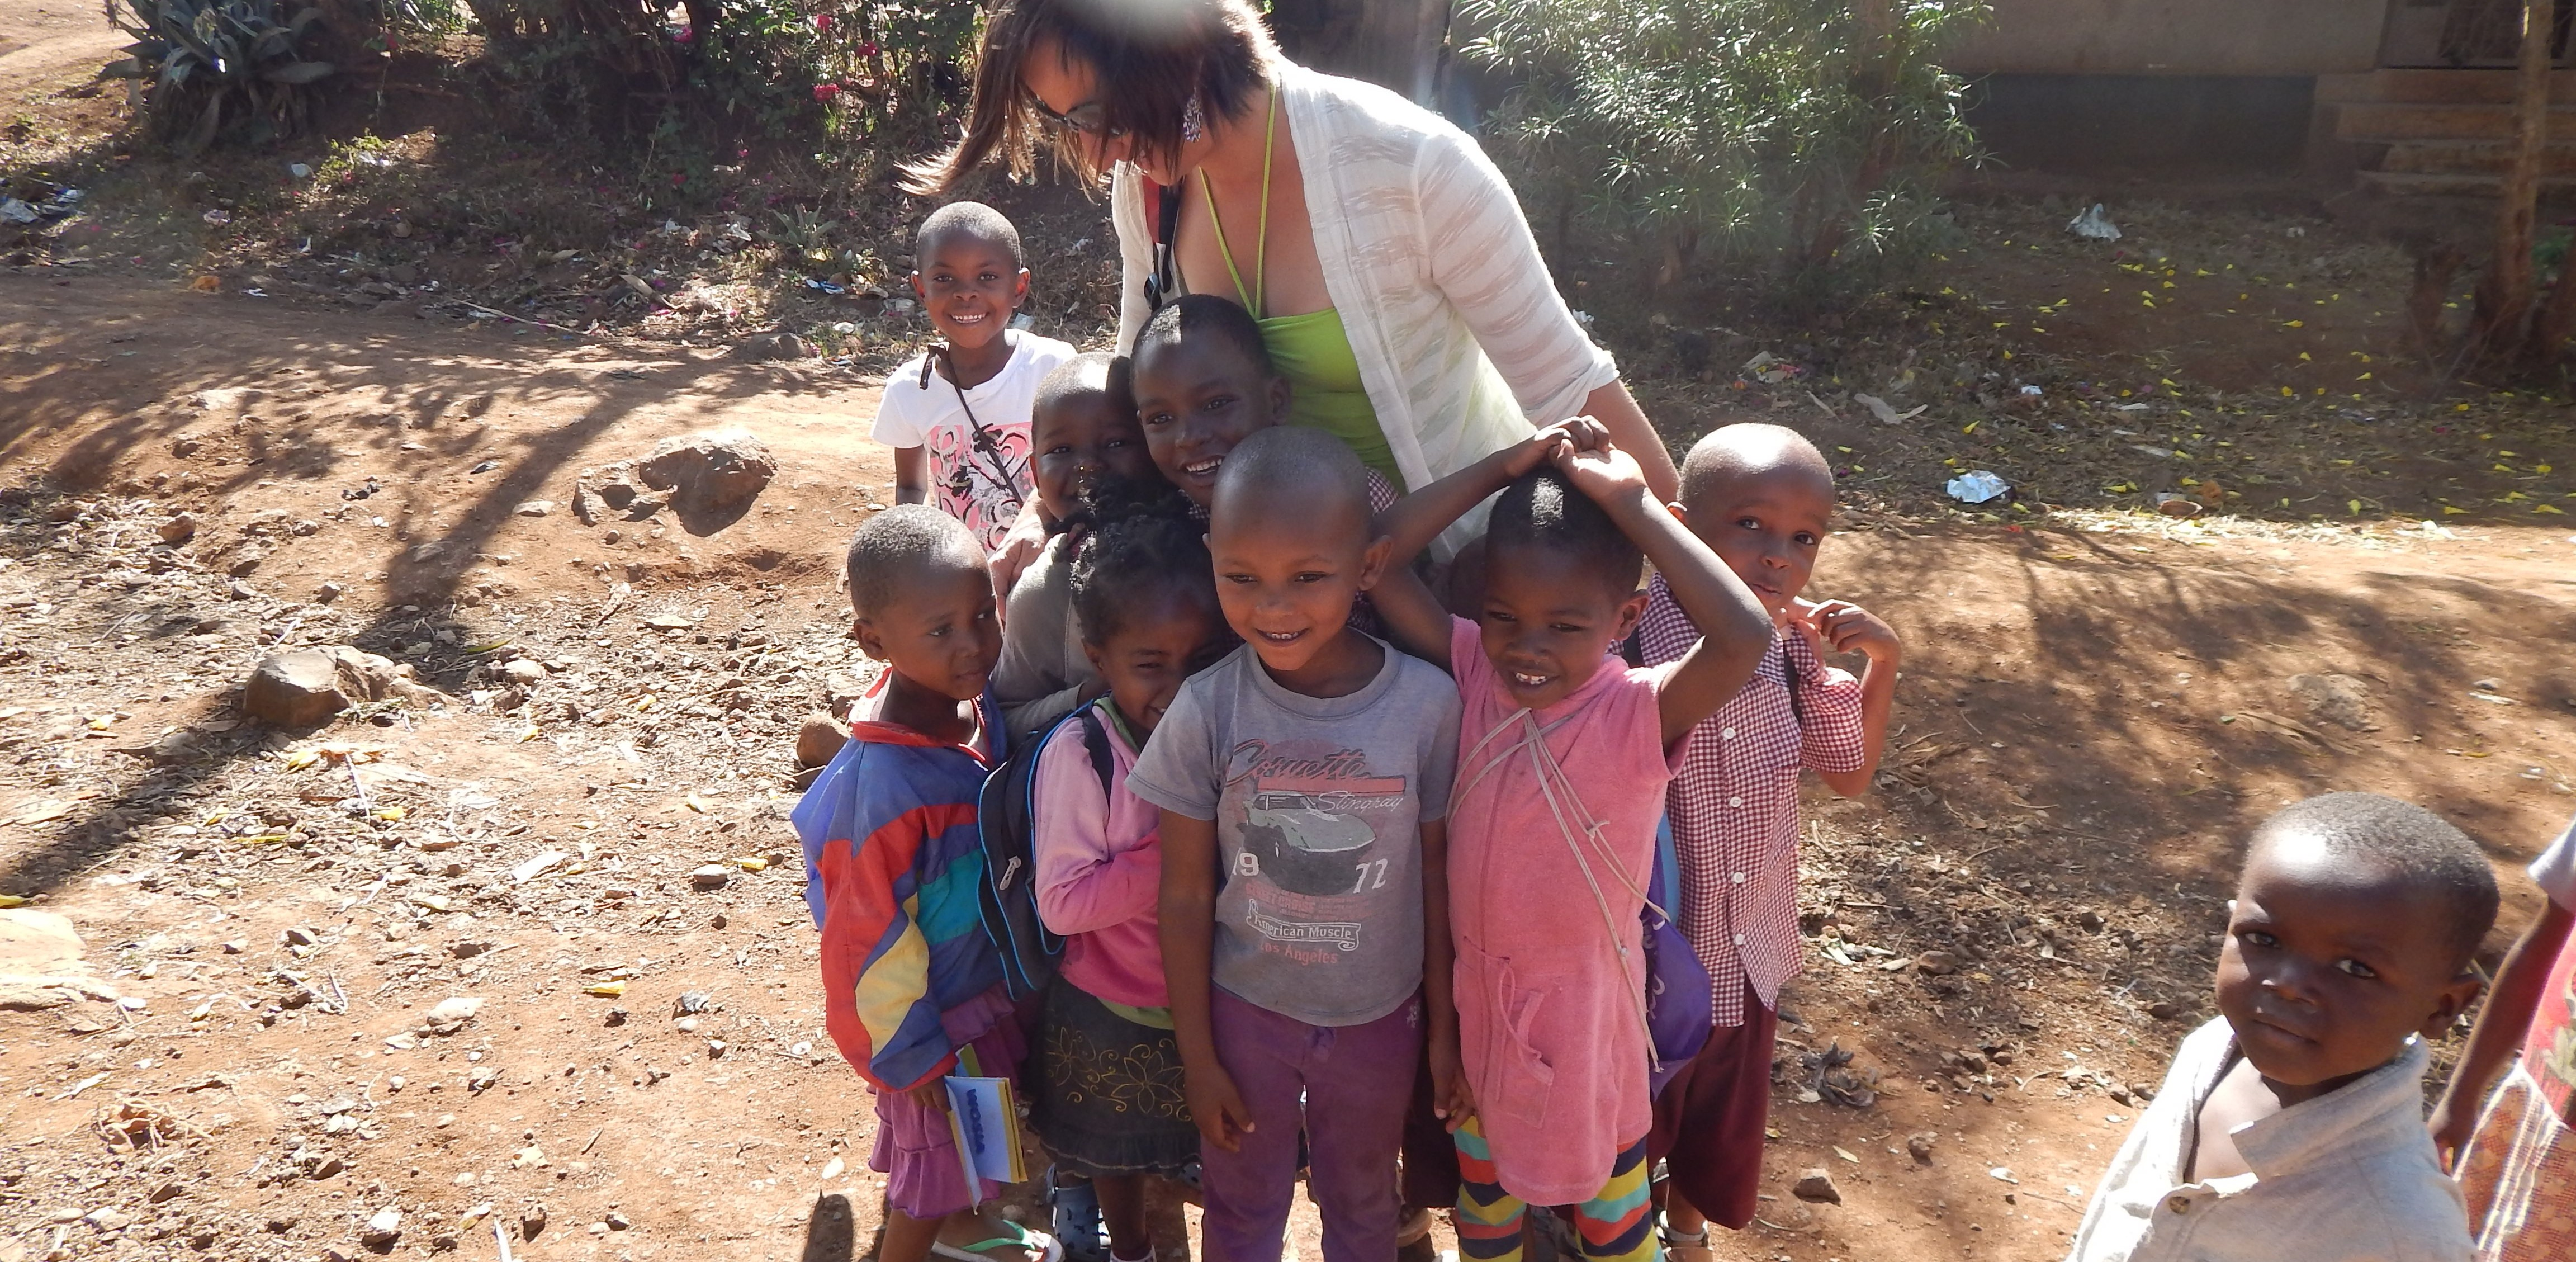 Stand Tall International: An Interview with Charity Co-Founder Masha Balovlenkov